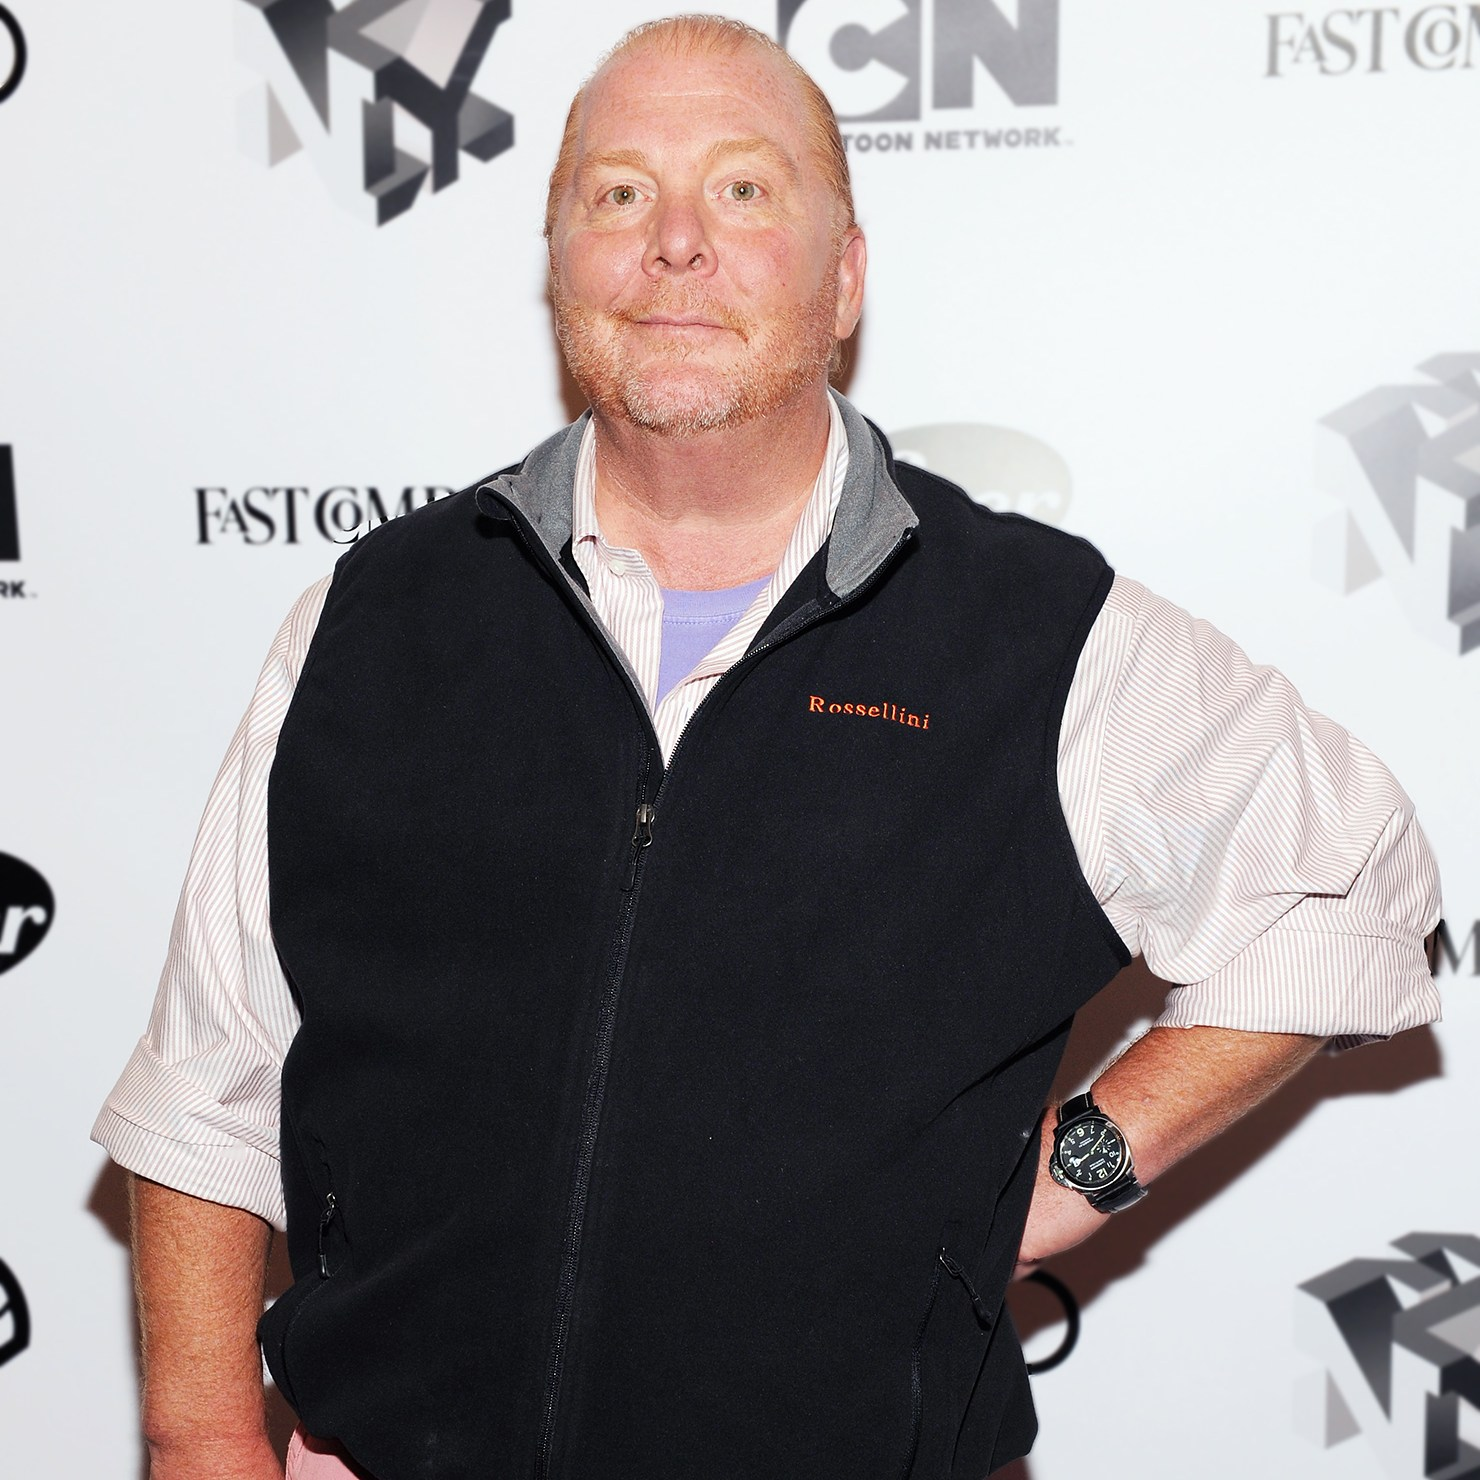 Mario Batali Has Lost a 'Ton of Weight,' Relocated Since Sexual Assault Allegations